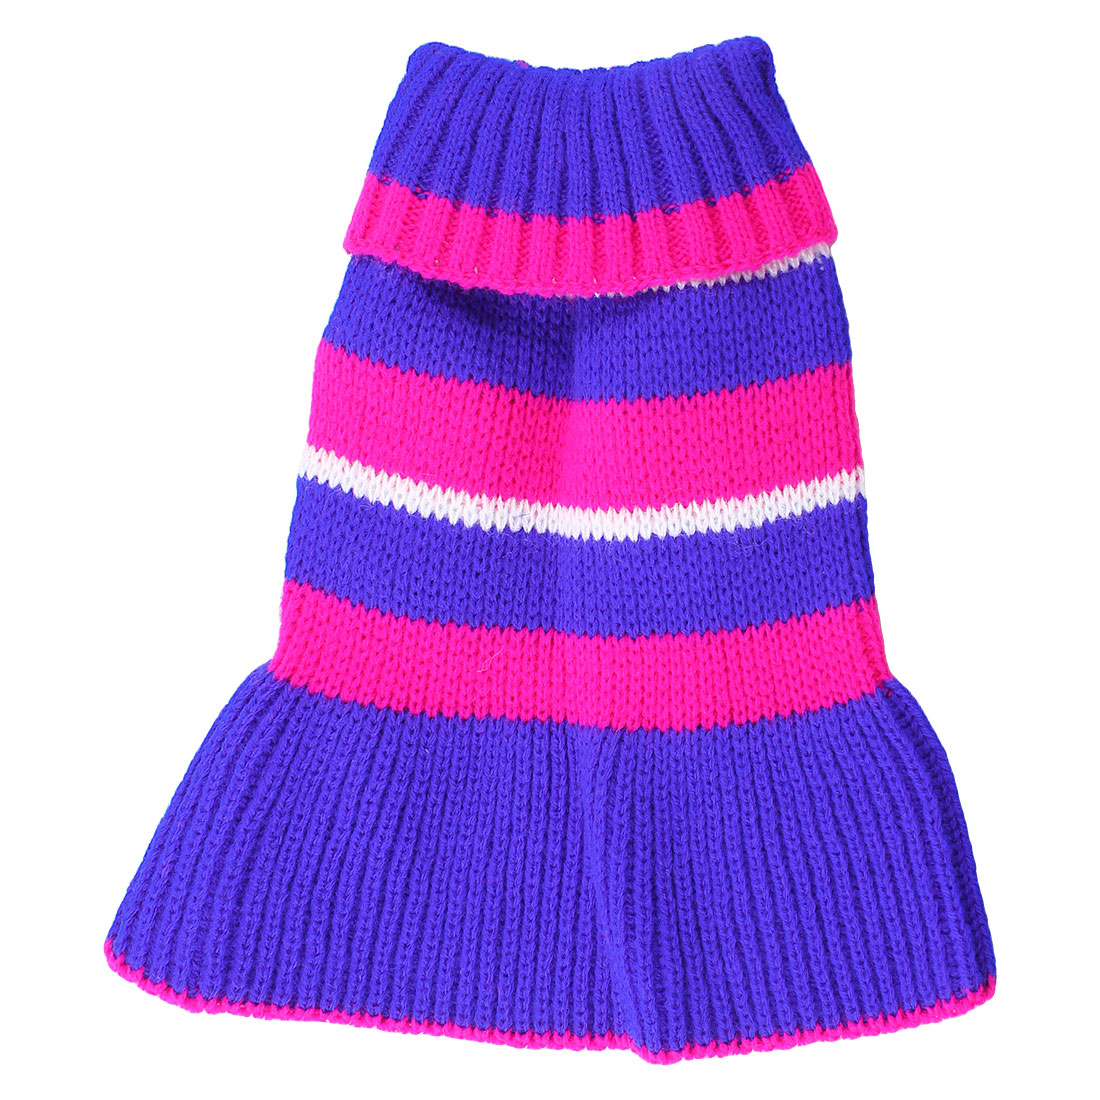 Pet Dog Yorkie Ribbed Cuff Knitwear Turtleneck Dress Apparel Sweater Fuchsia Blue Size 6